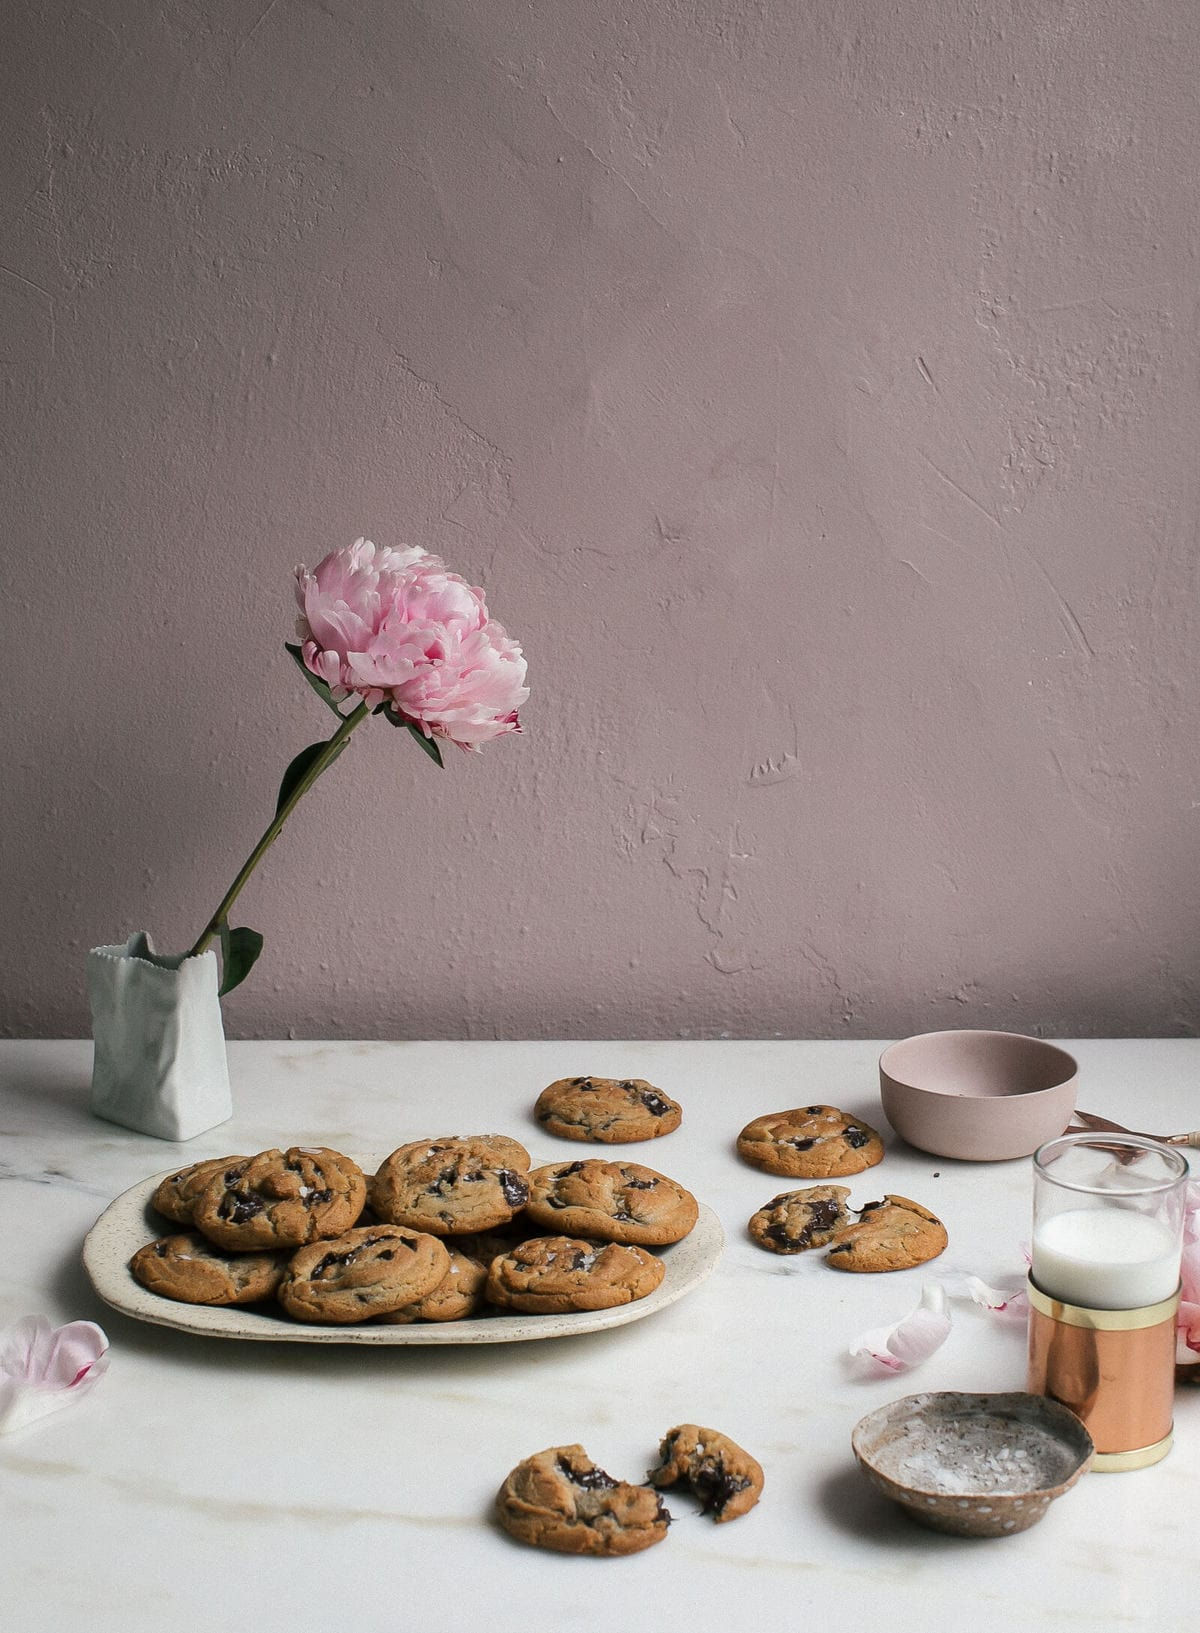 My Favorite Cozy Chocolate Chip Cookies